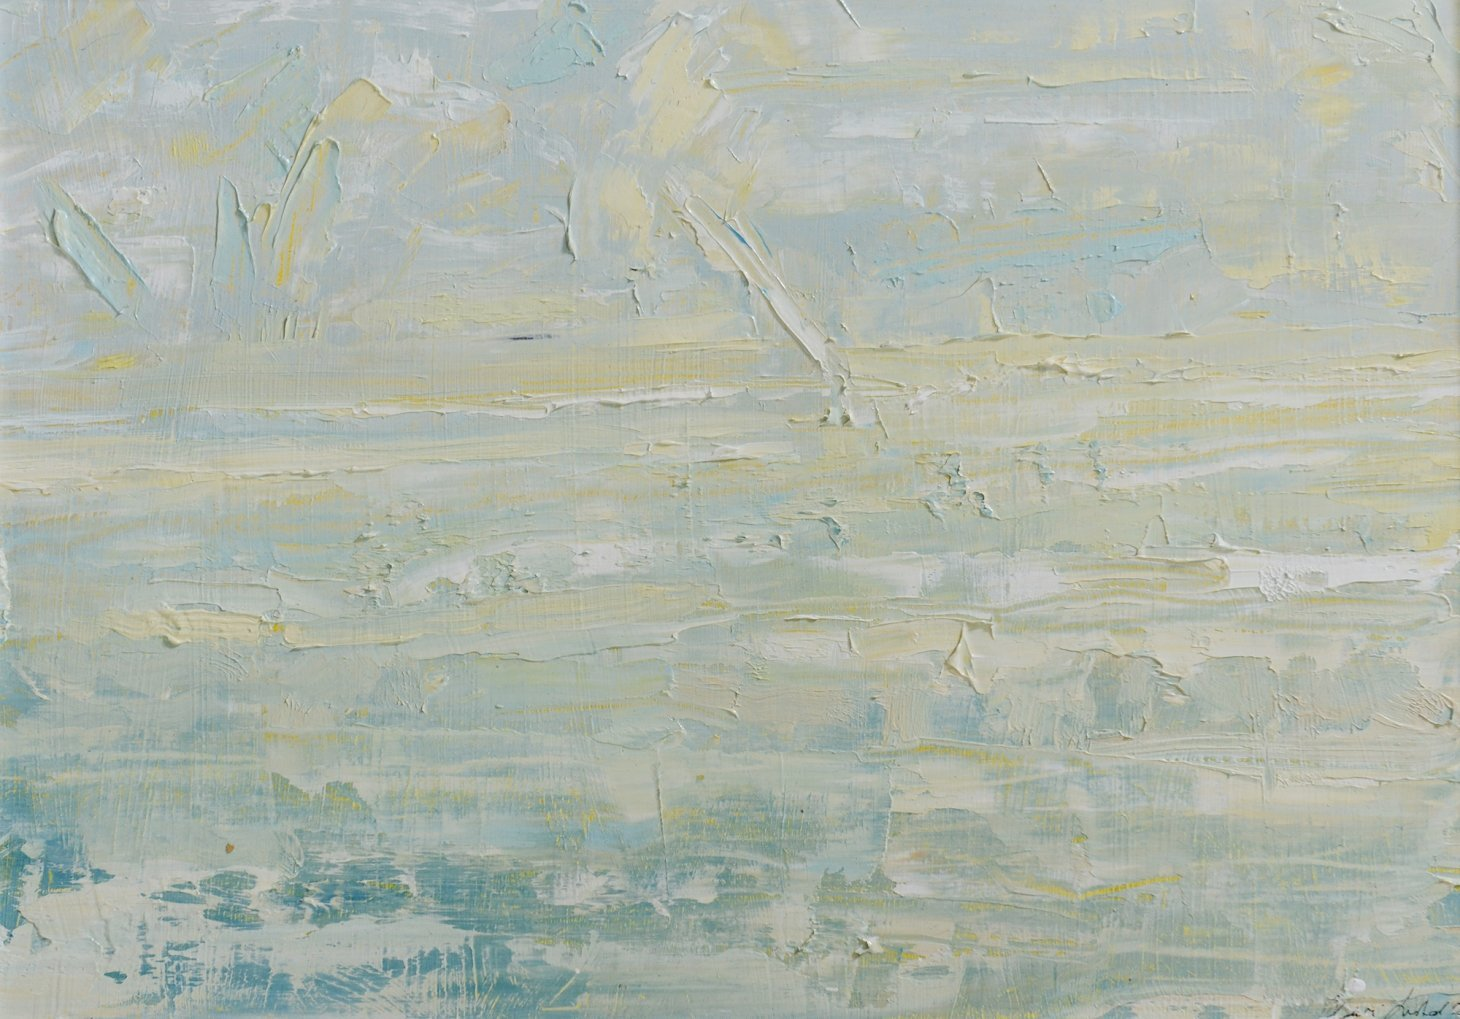 Judy Lusted - Gwithian Seas